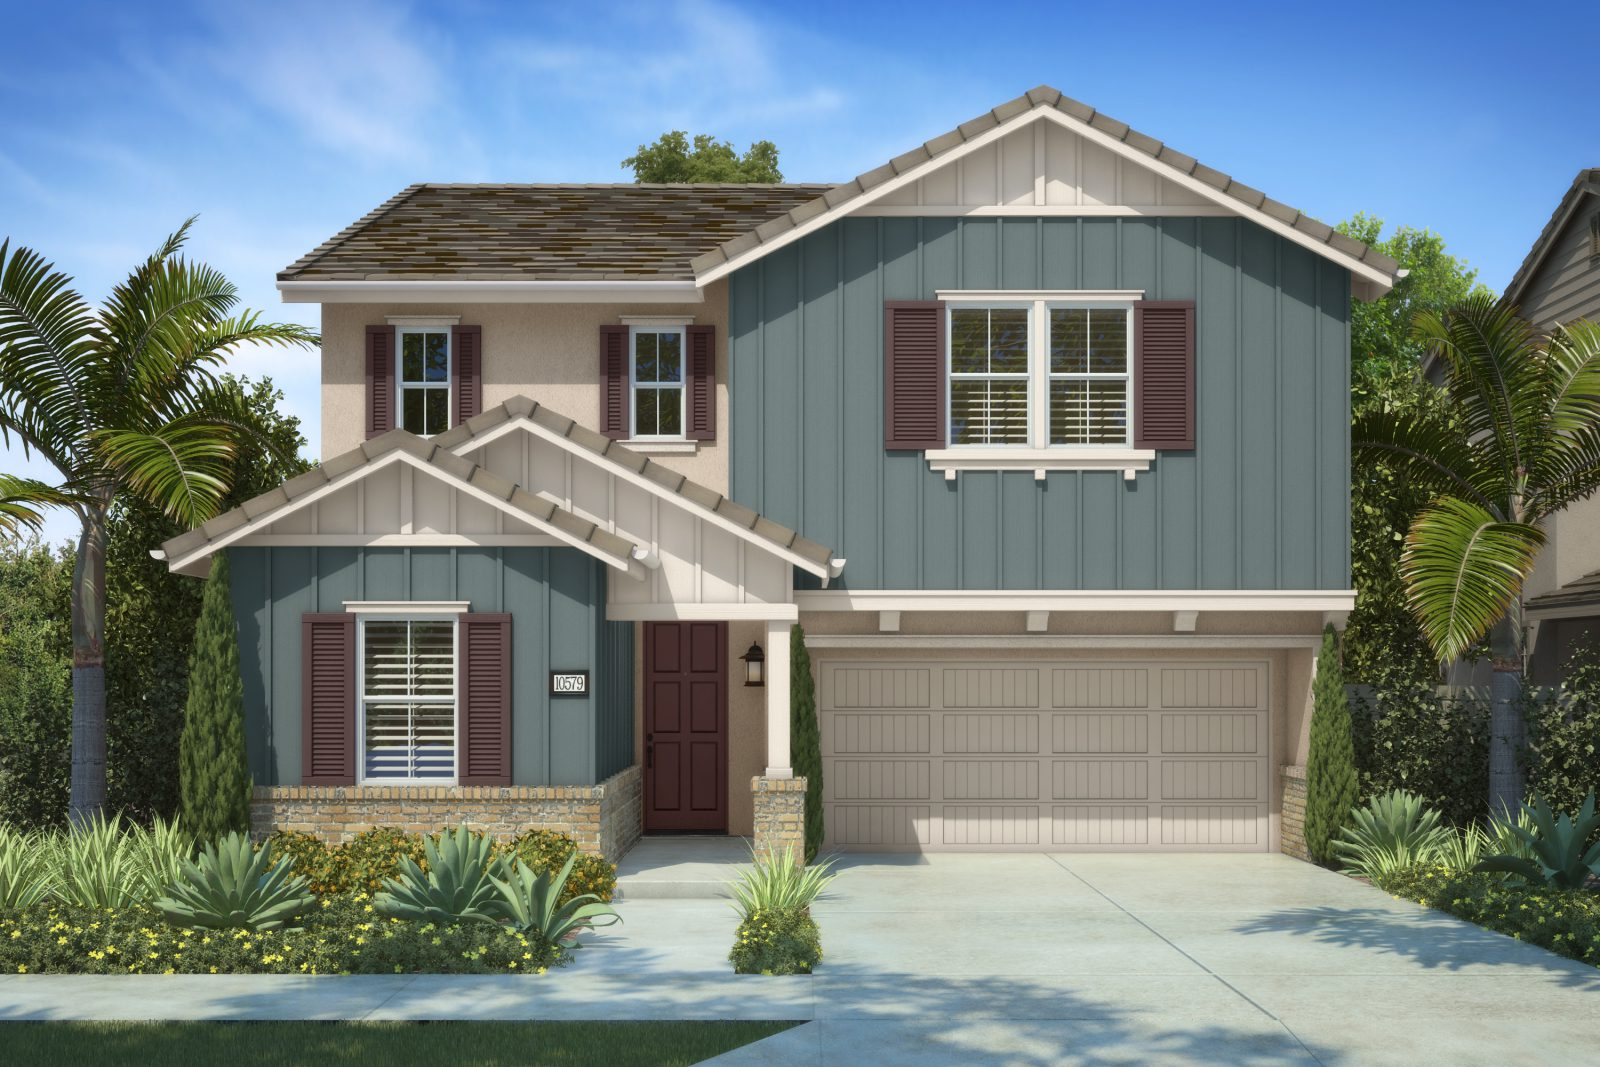 New San Bernardino Homes for Sale